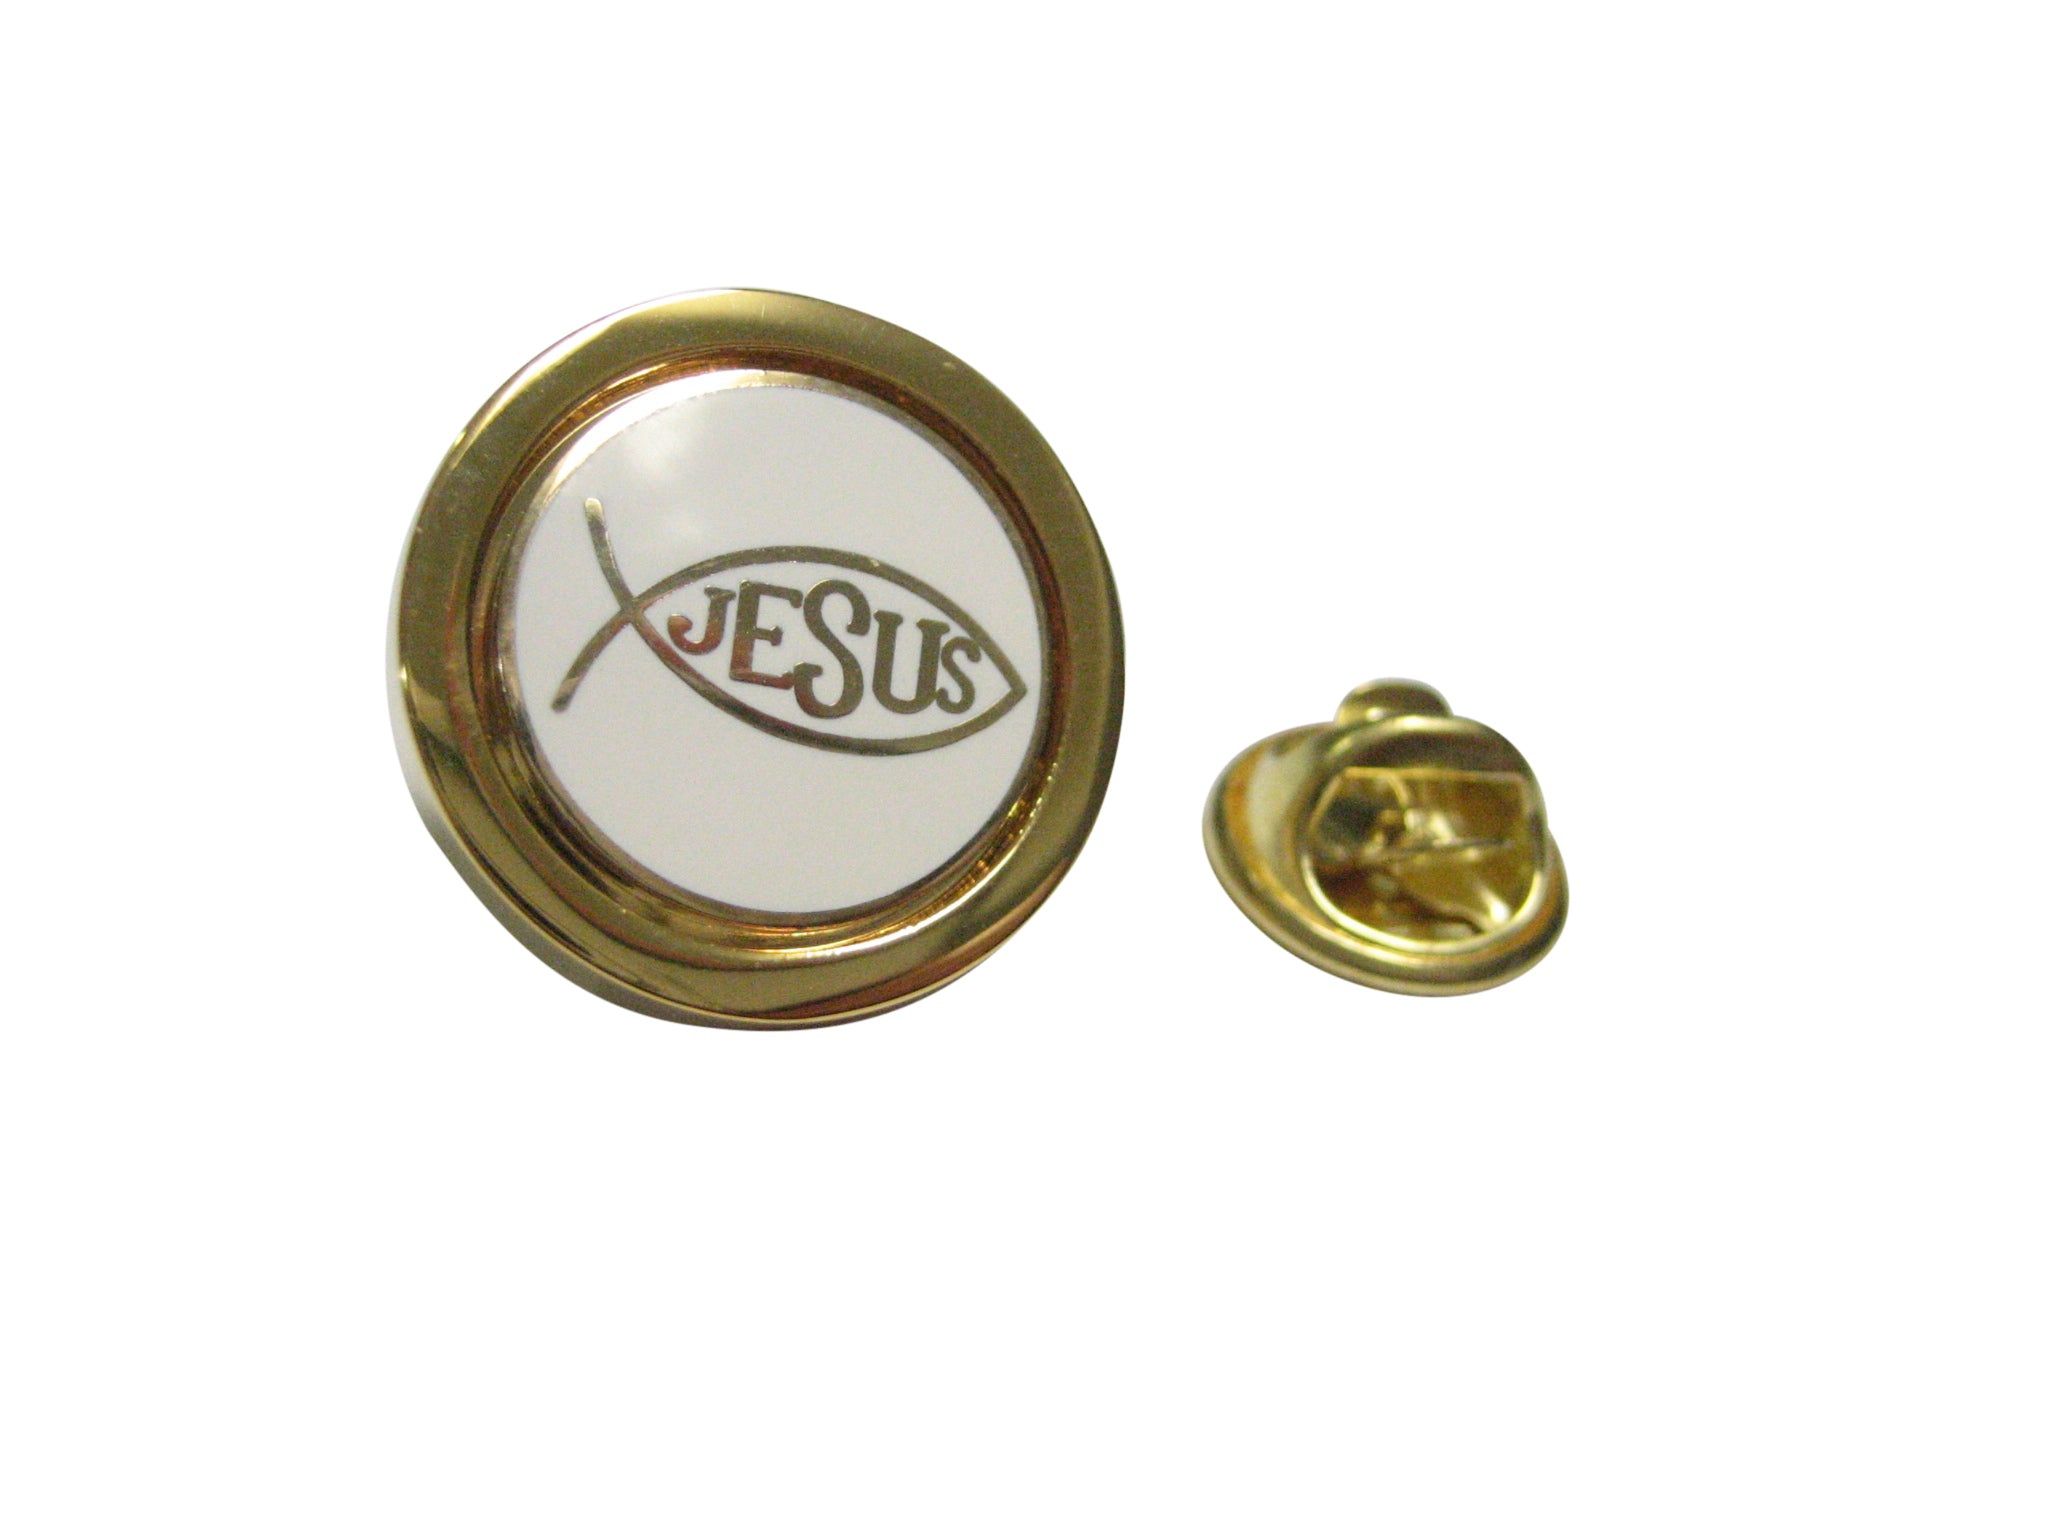 Gold and White Toned Religious Ichthys Jesus Fish Lapel Pin